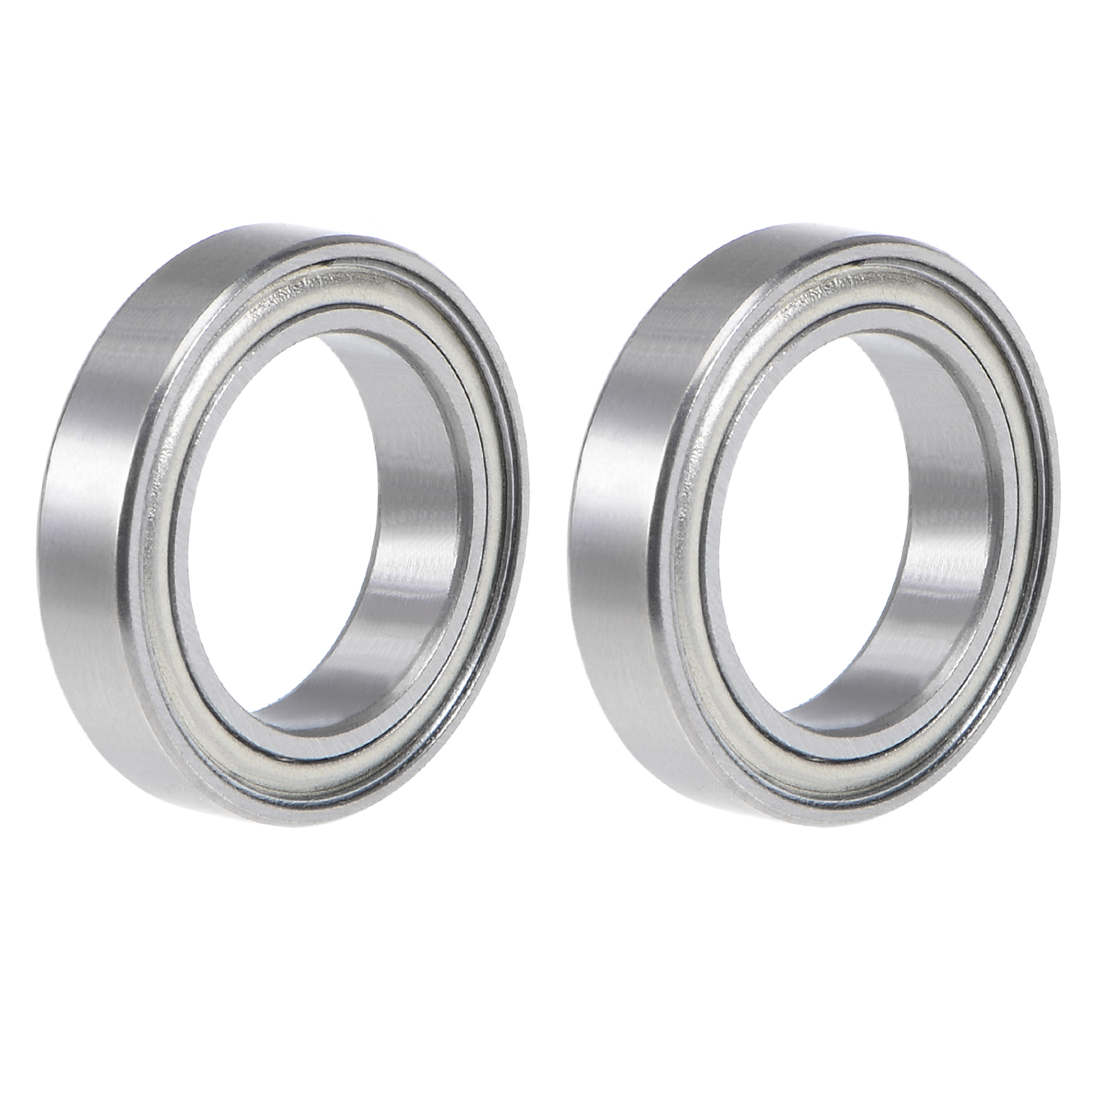 6701ZZ Deep Groove Ball Bearing 12x18x4mm Double Shielded Chrome Bearings 2pcs